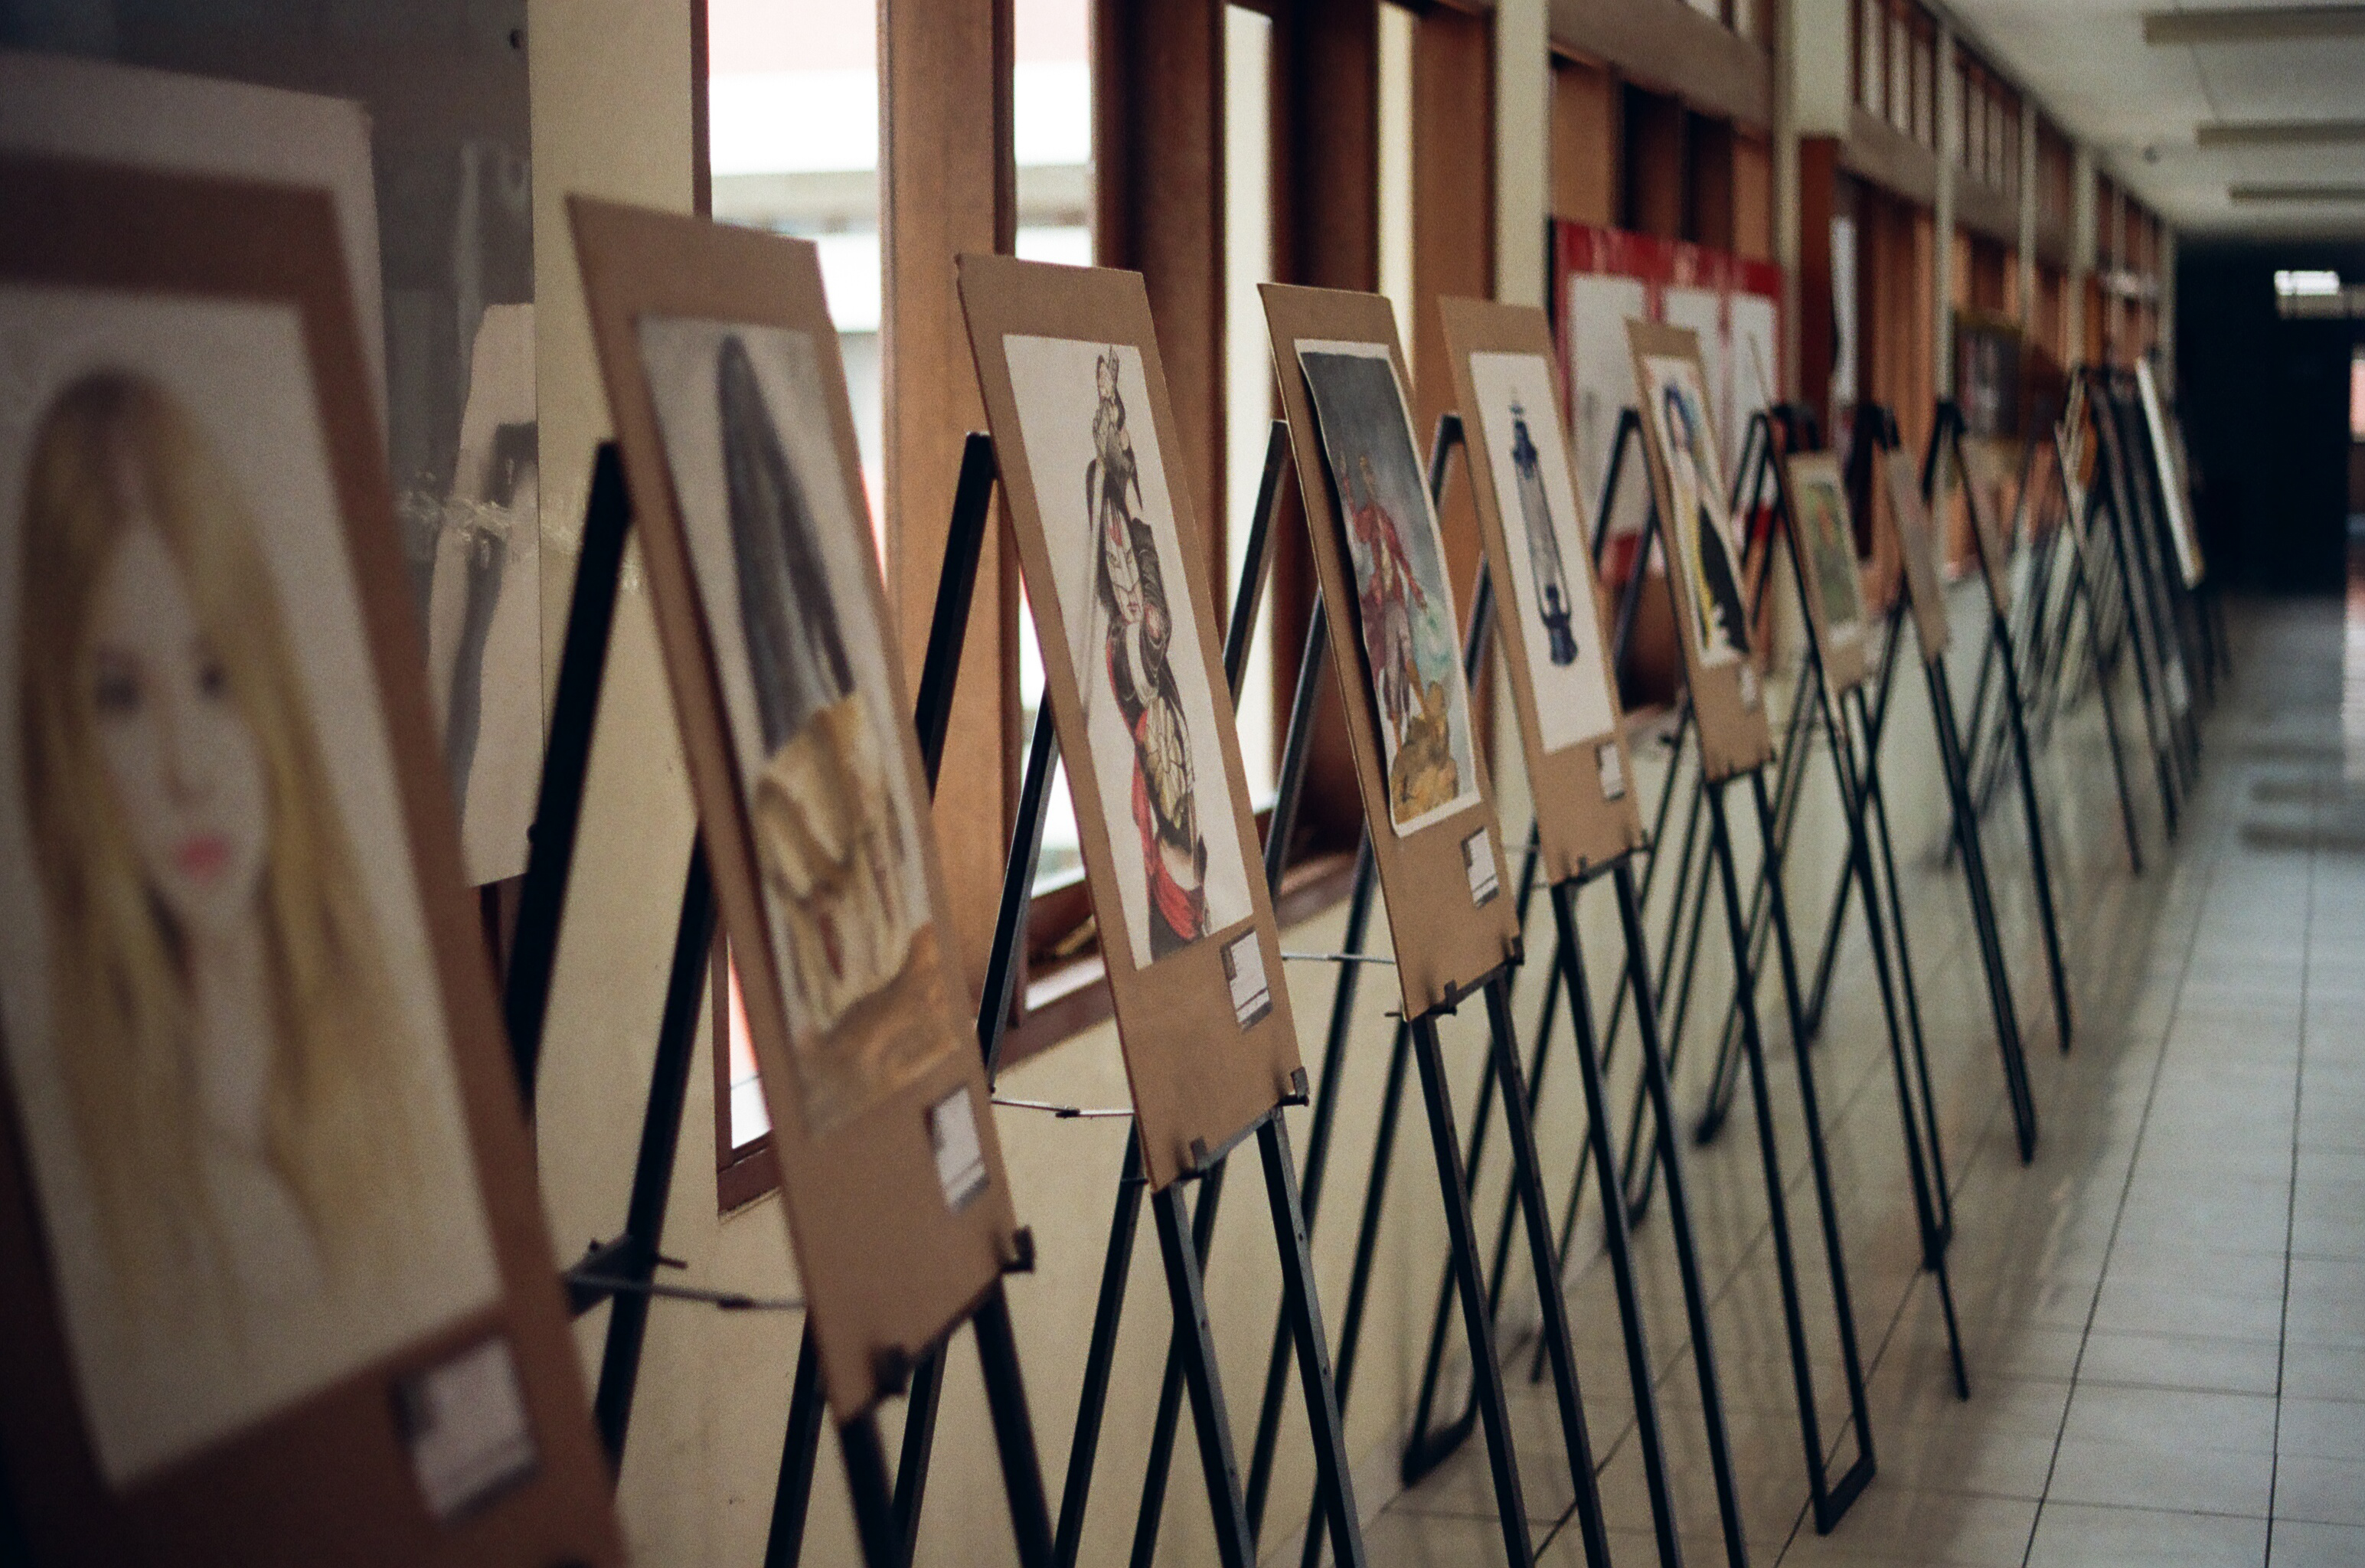 Having all the displays in Sync